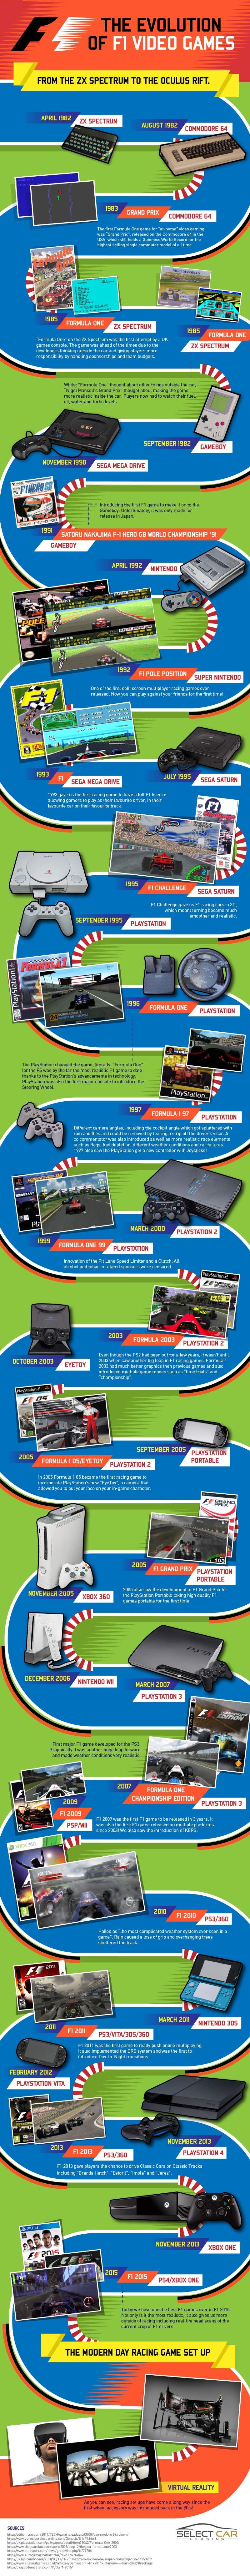 The Evolution of F1 Video Games [Infographic]